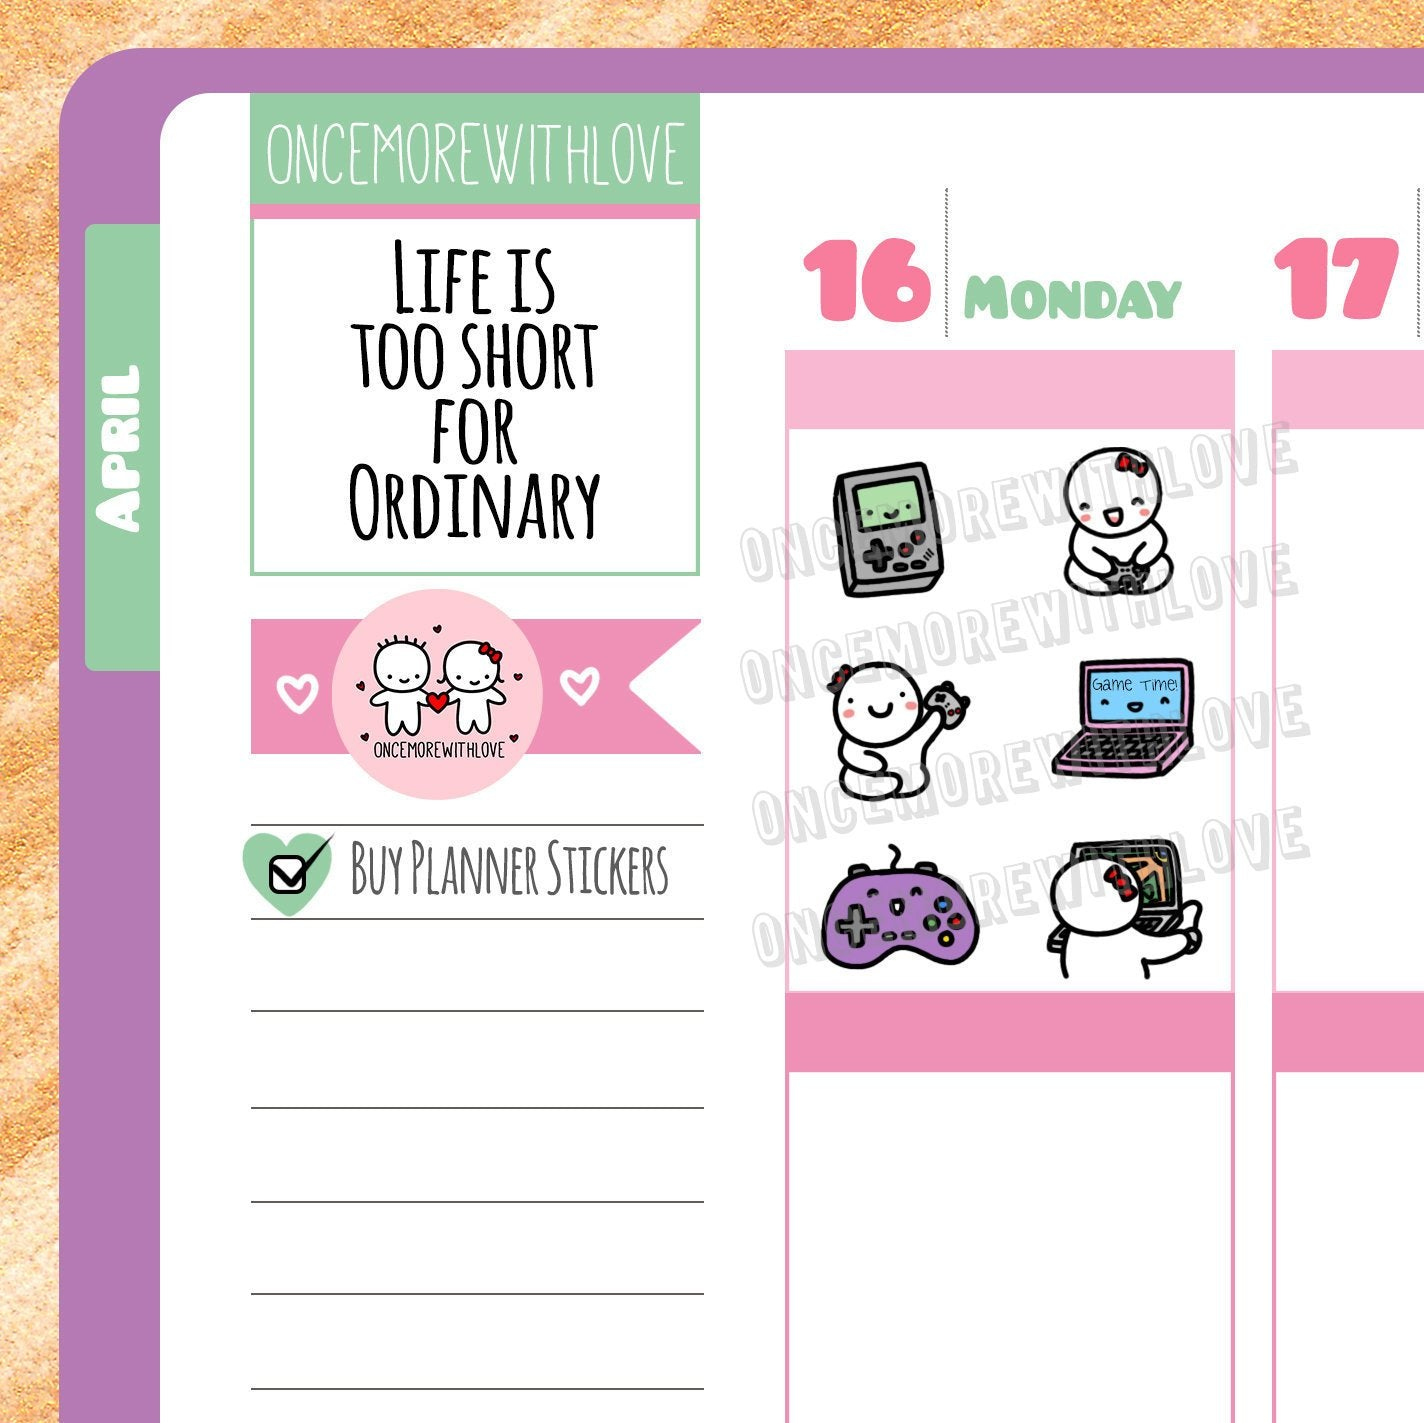 Munchkins - Gaming Time Console and Computer Game Planner Stickers (M40)